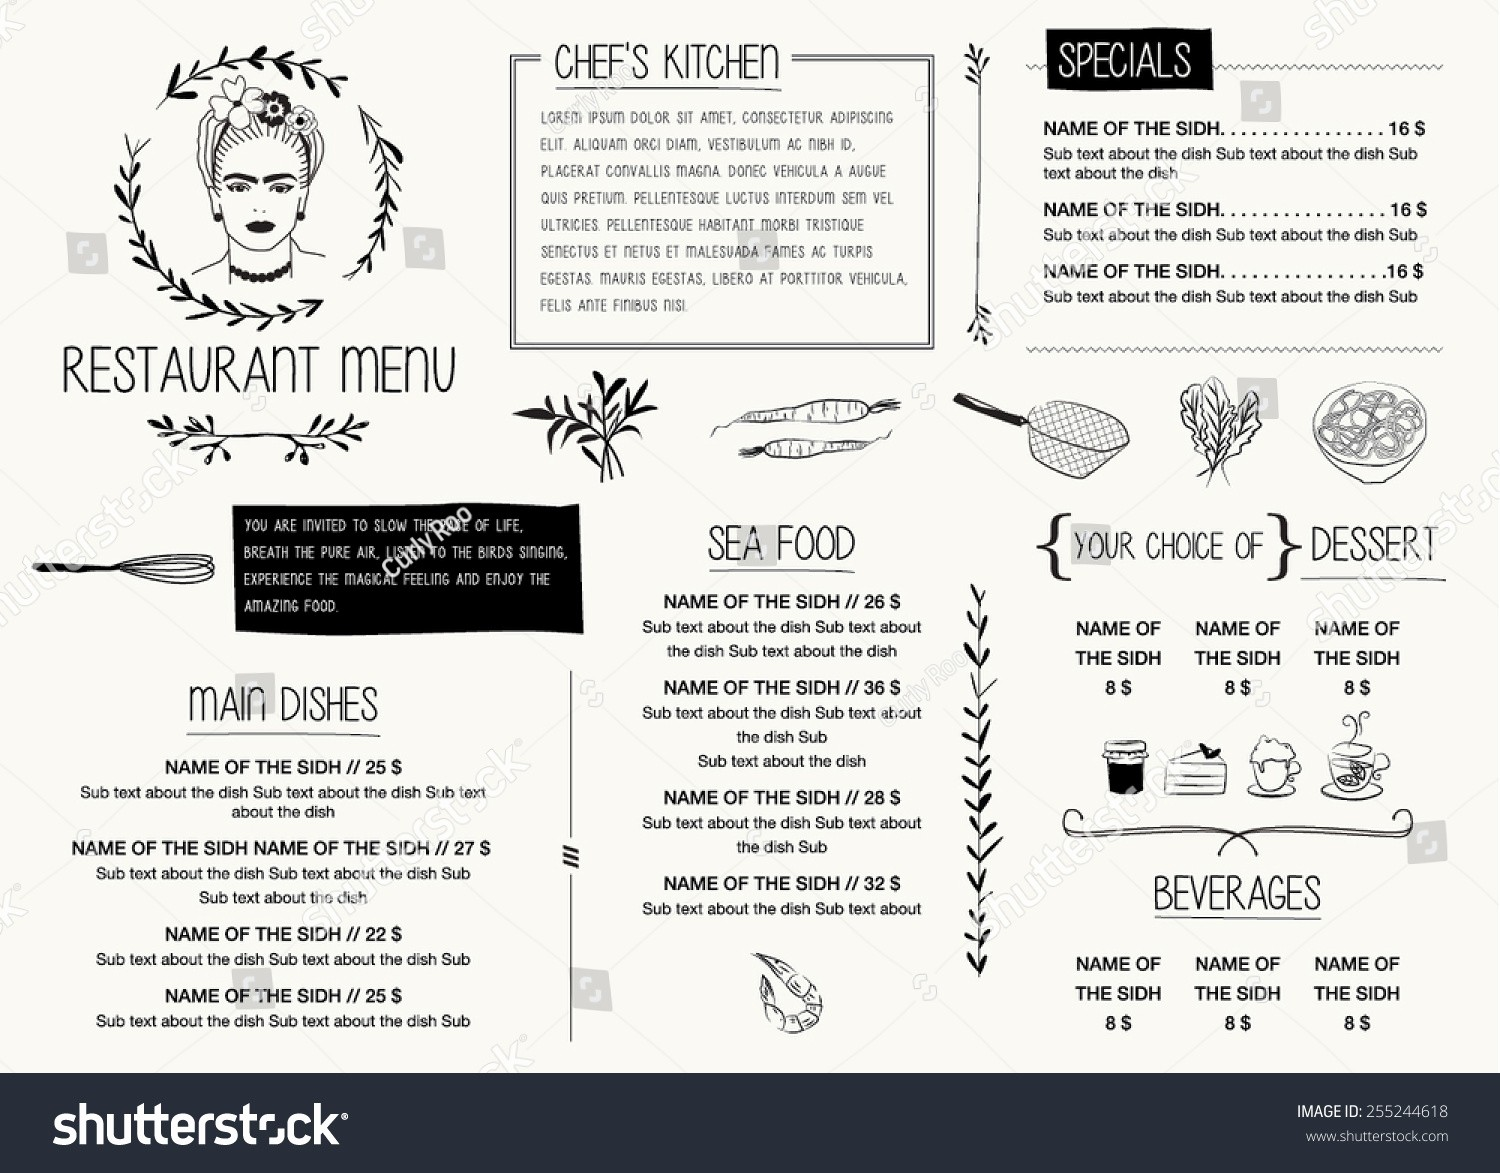 Free Editable Restaurant Menu Templates Best Of Restaurant Menu Template Vector Illustration File with